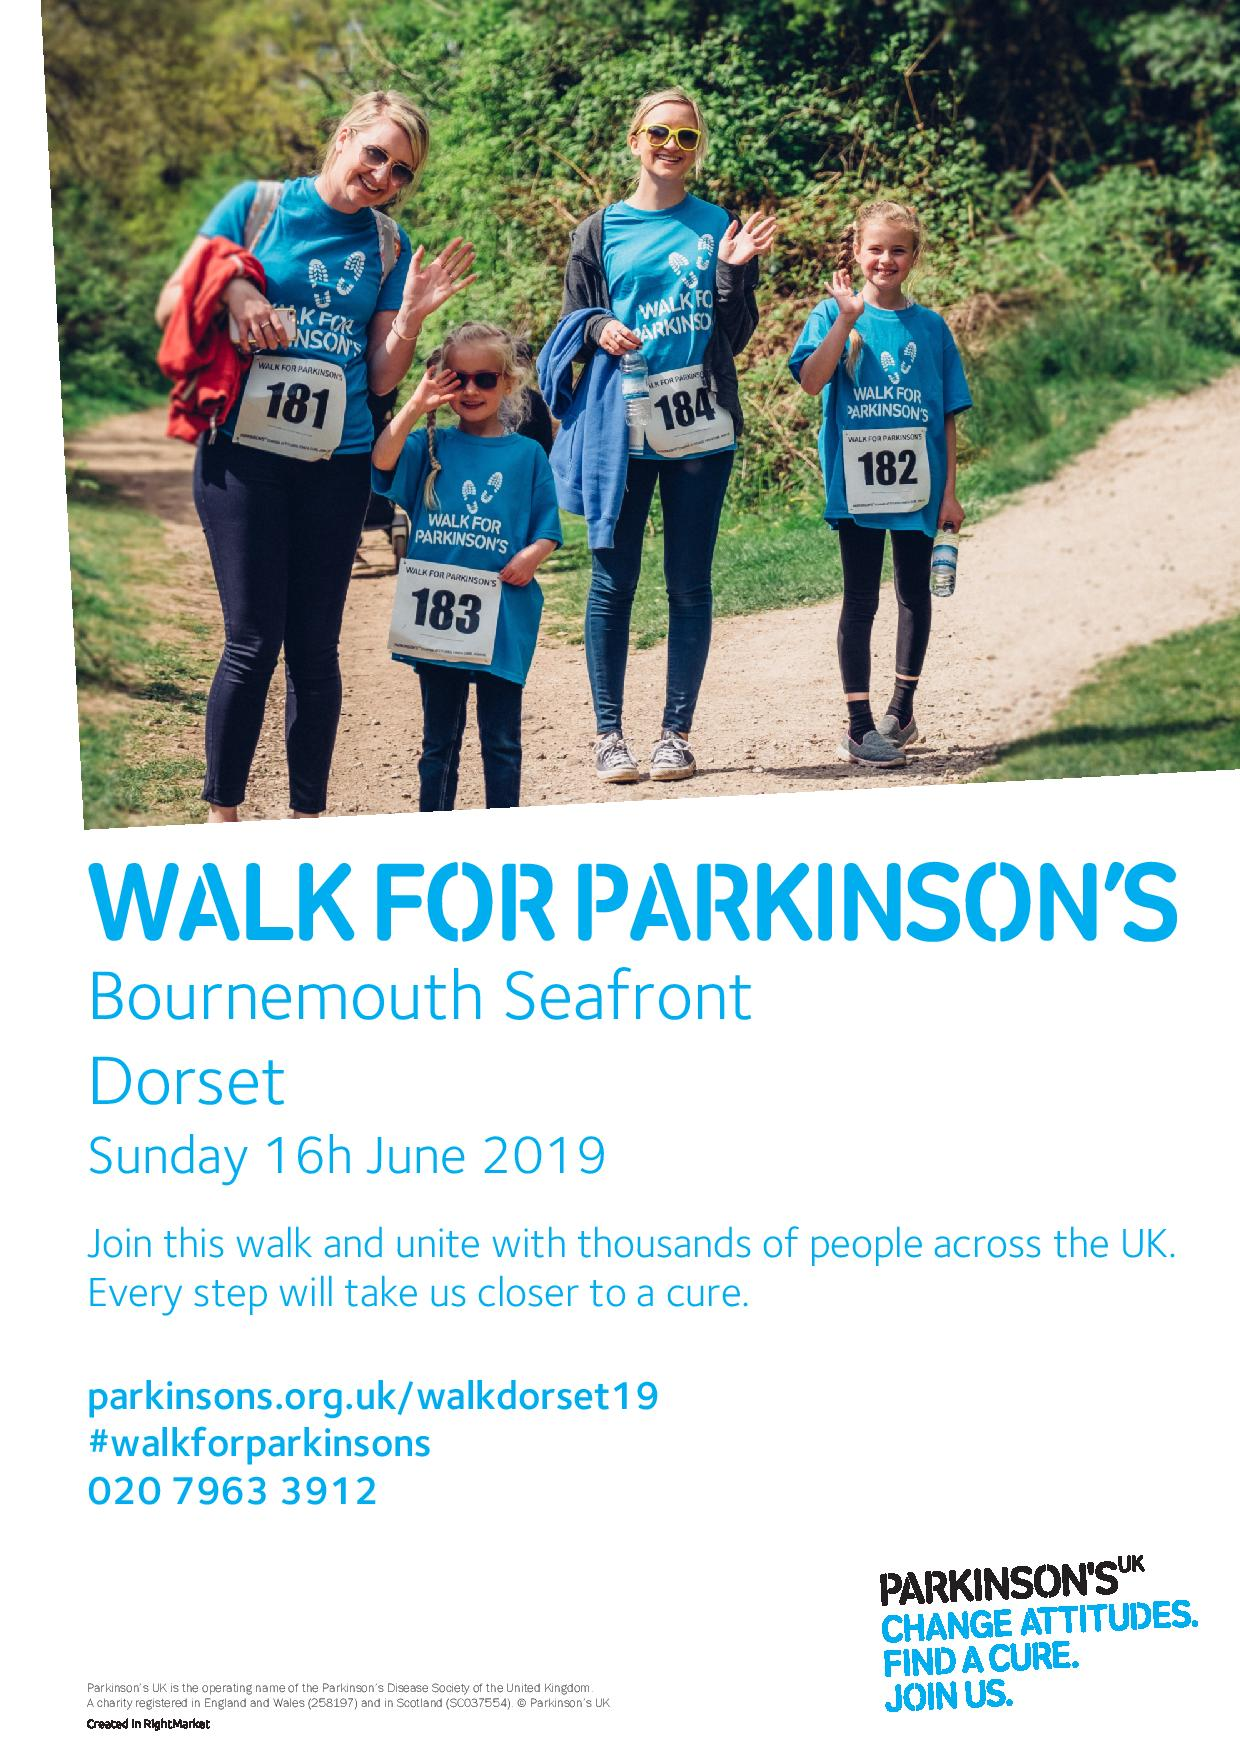 Walk for Parkinson's Dorset